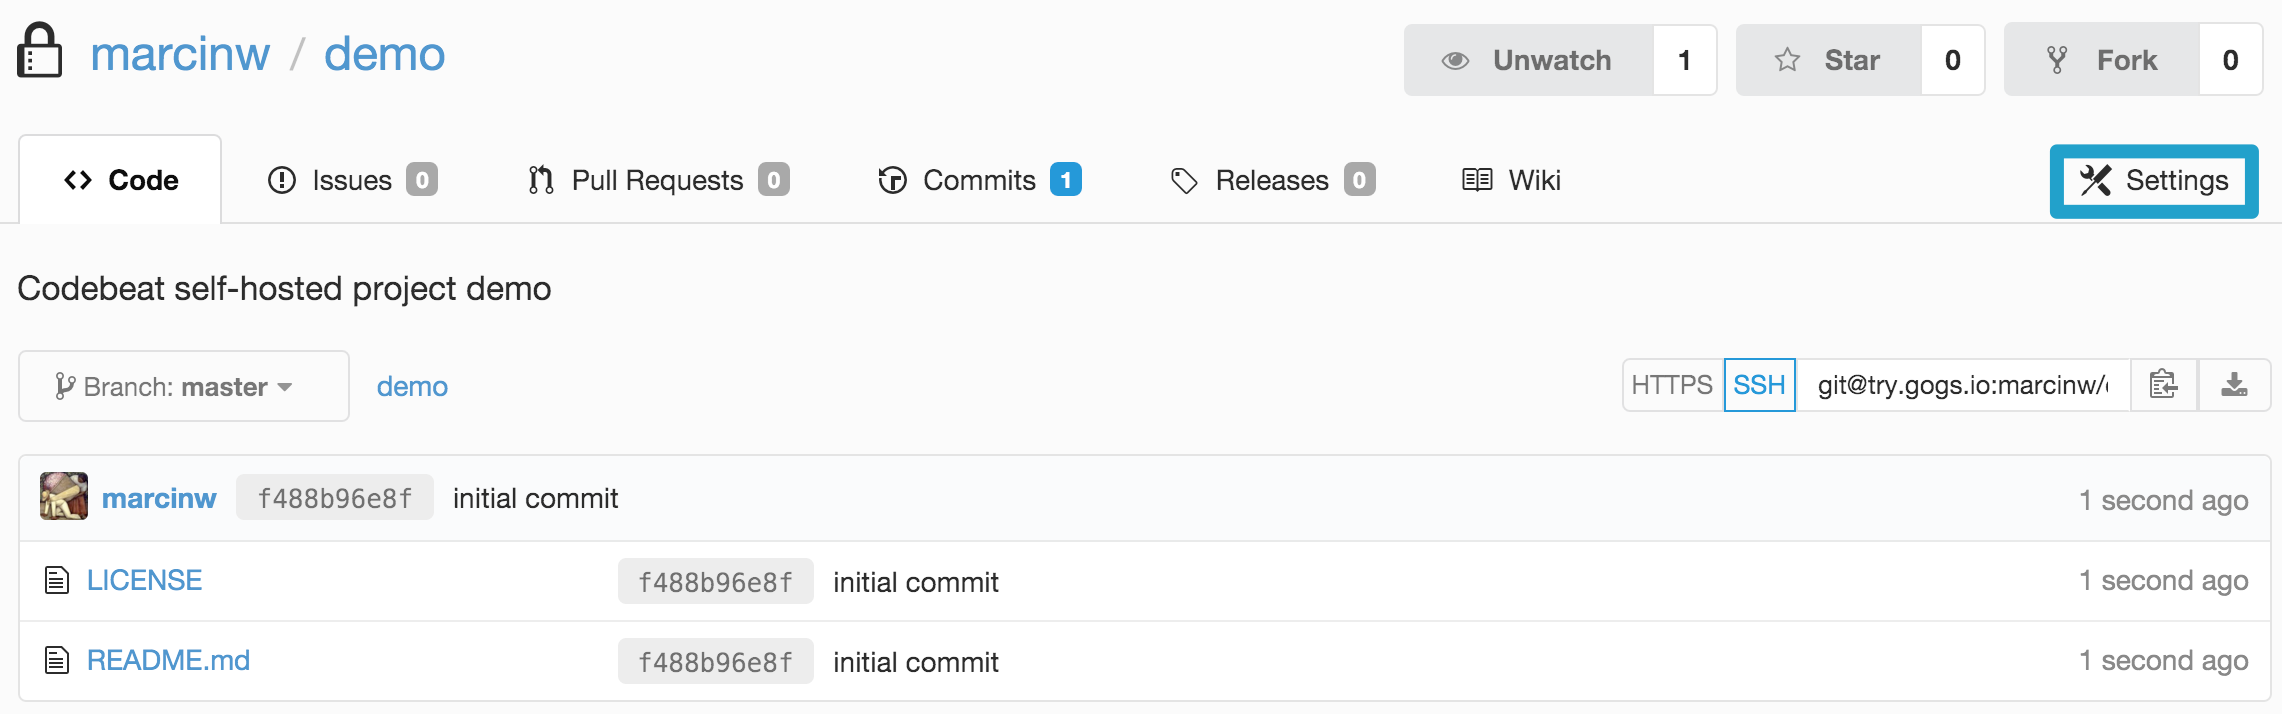 Using codebeat with a self-hosted repo